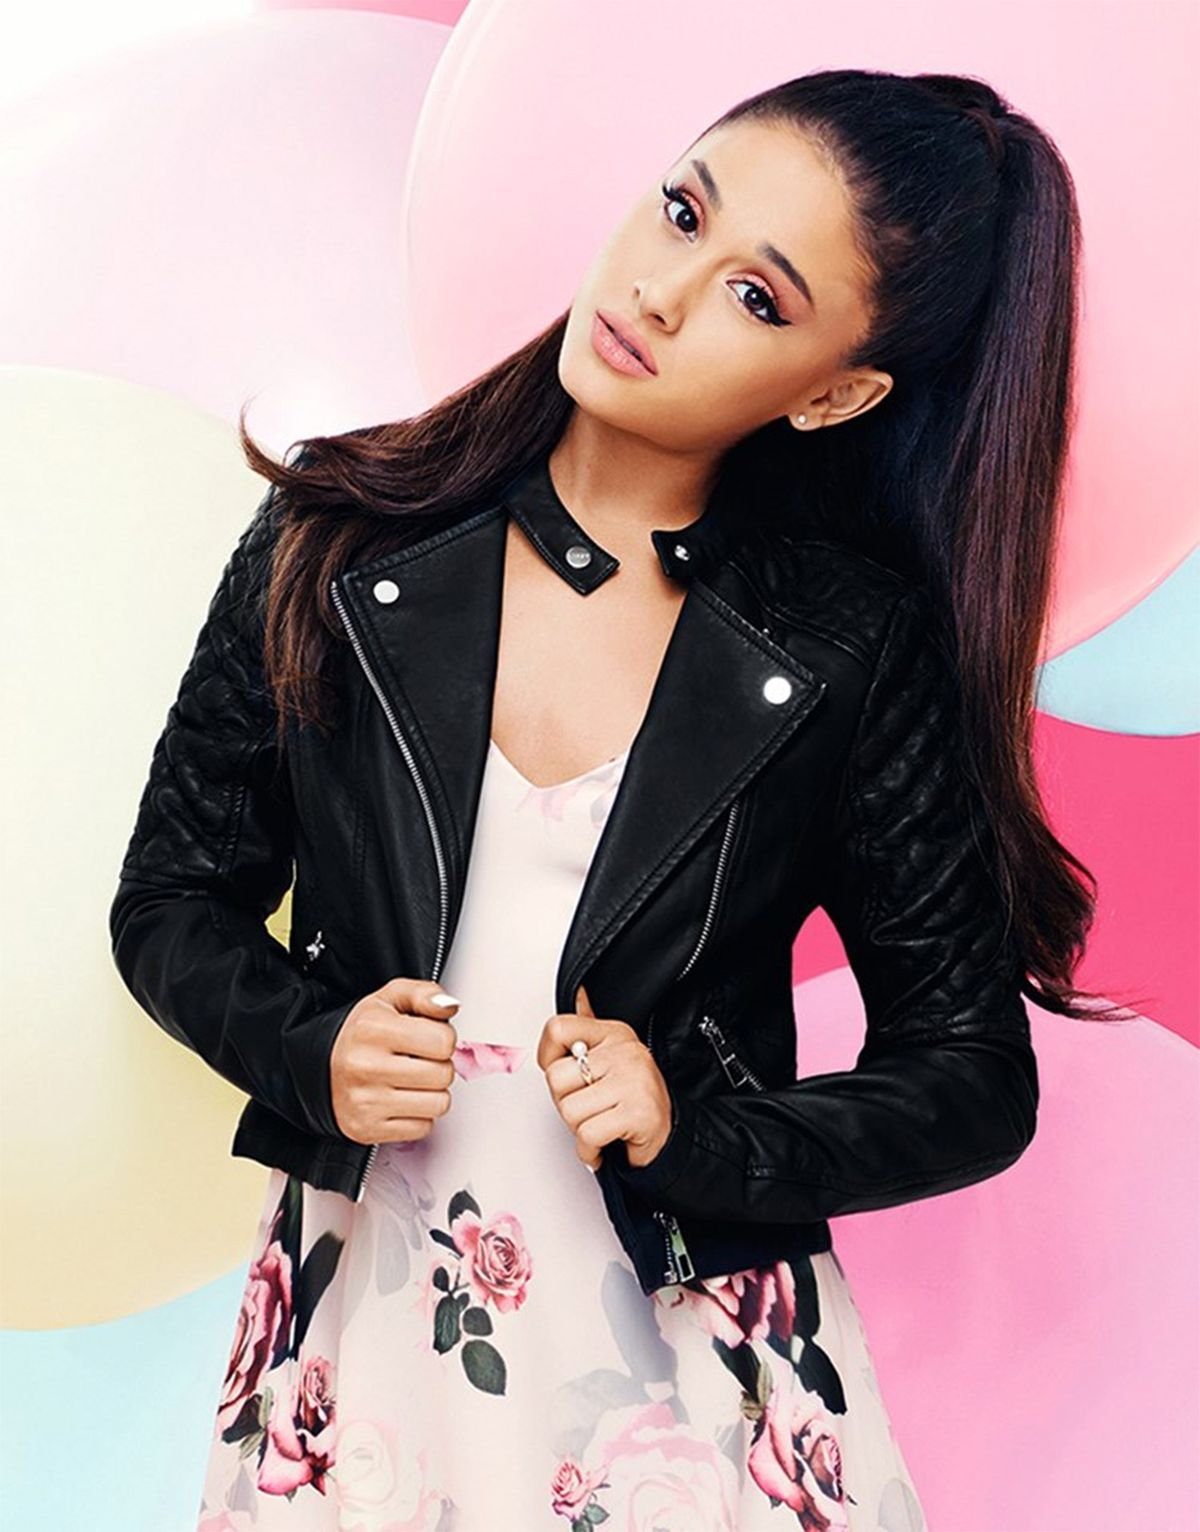 9f78a67f1a Ariana Grande Has One Modeling Pose And It Can t Be Comfortable ...